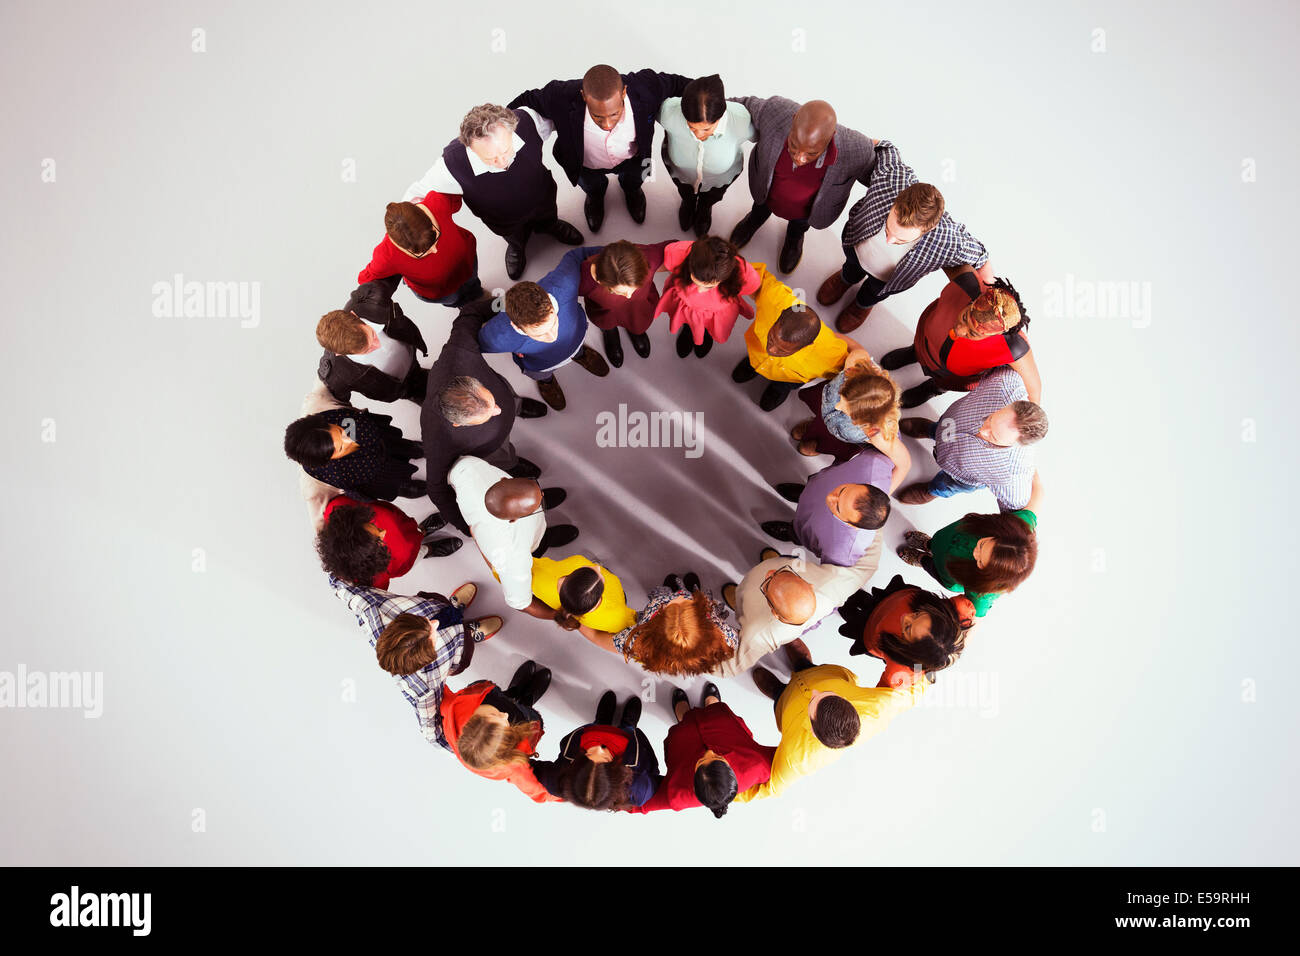 Business people in circle - Stock Image